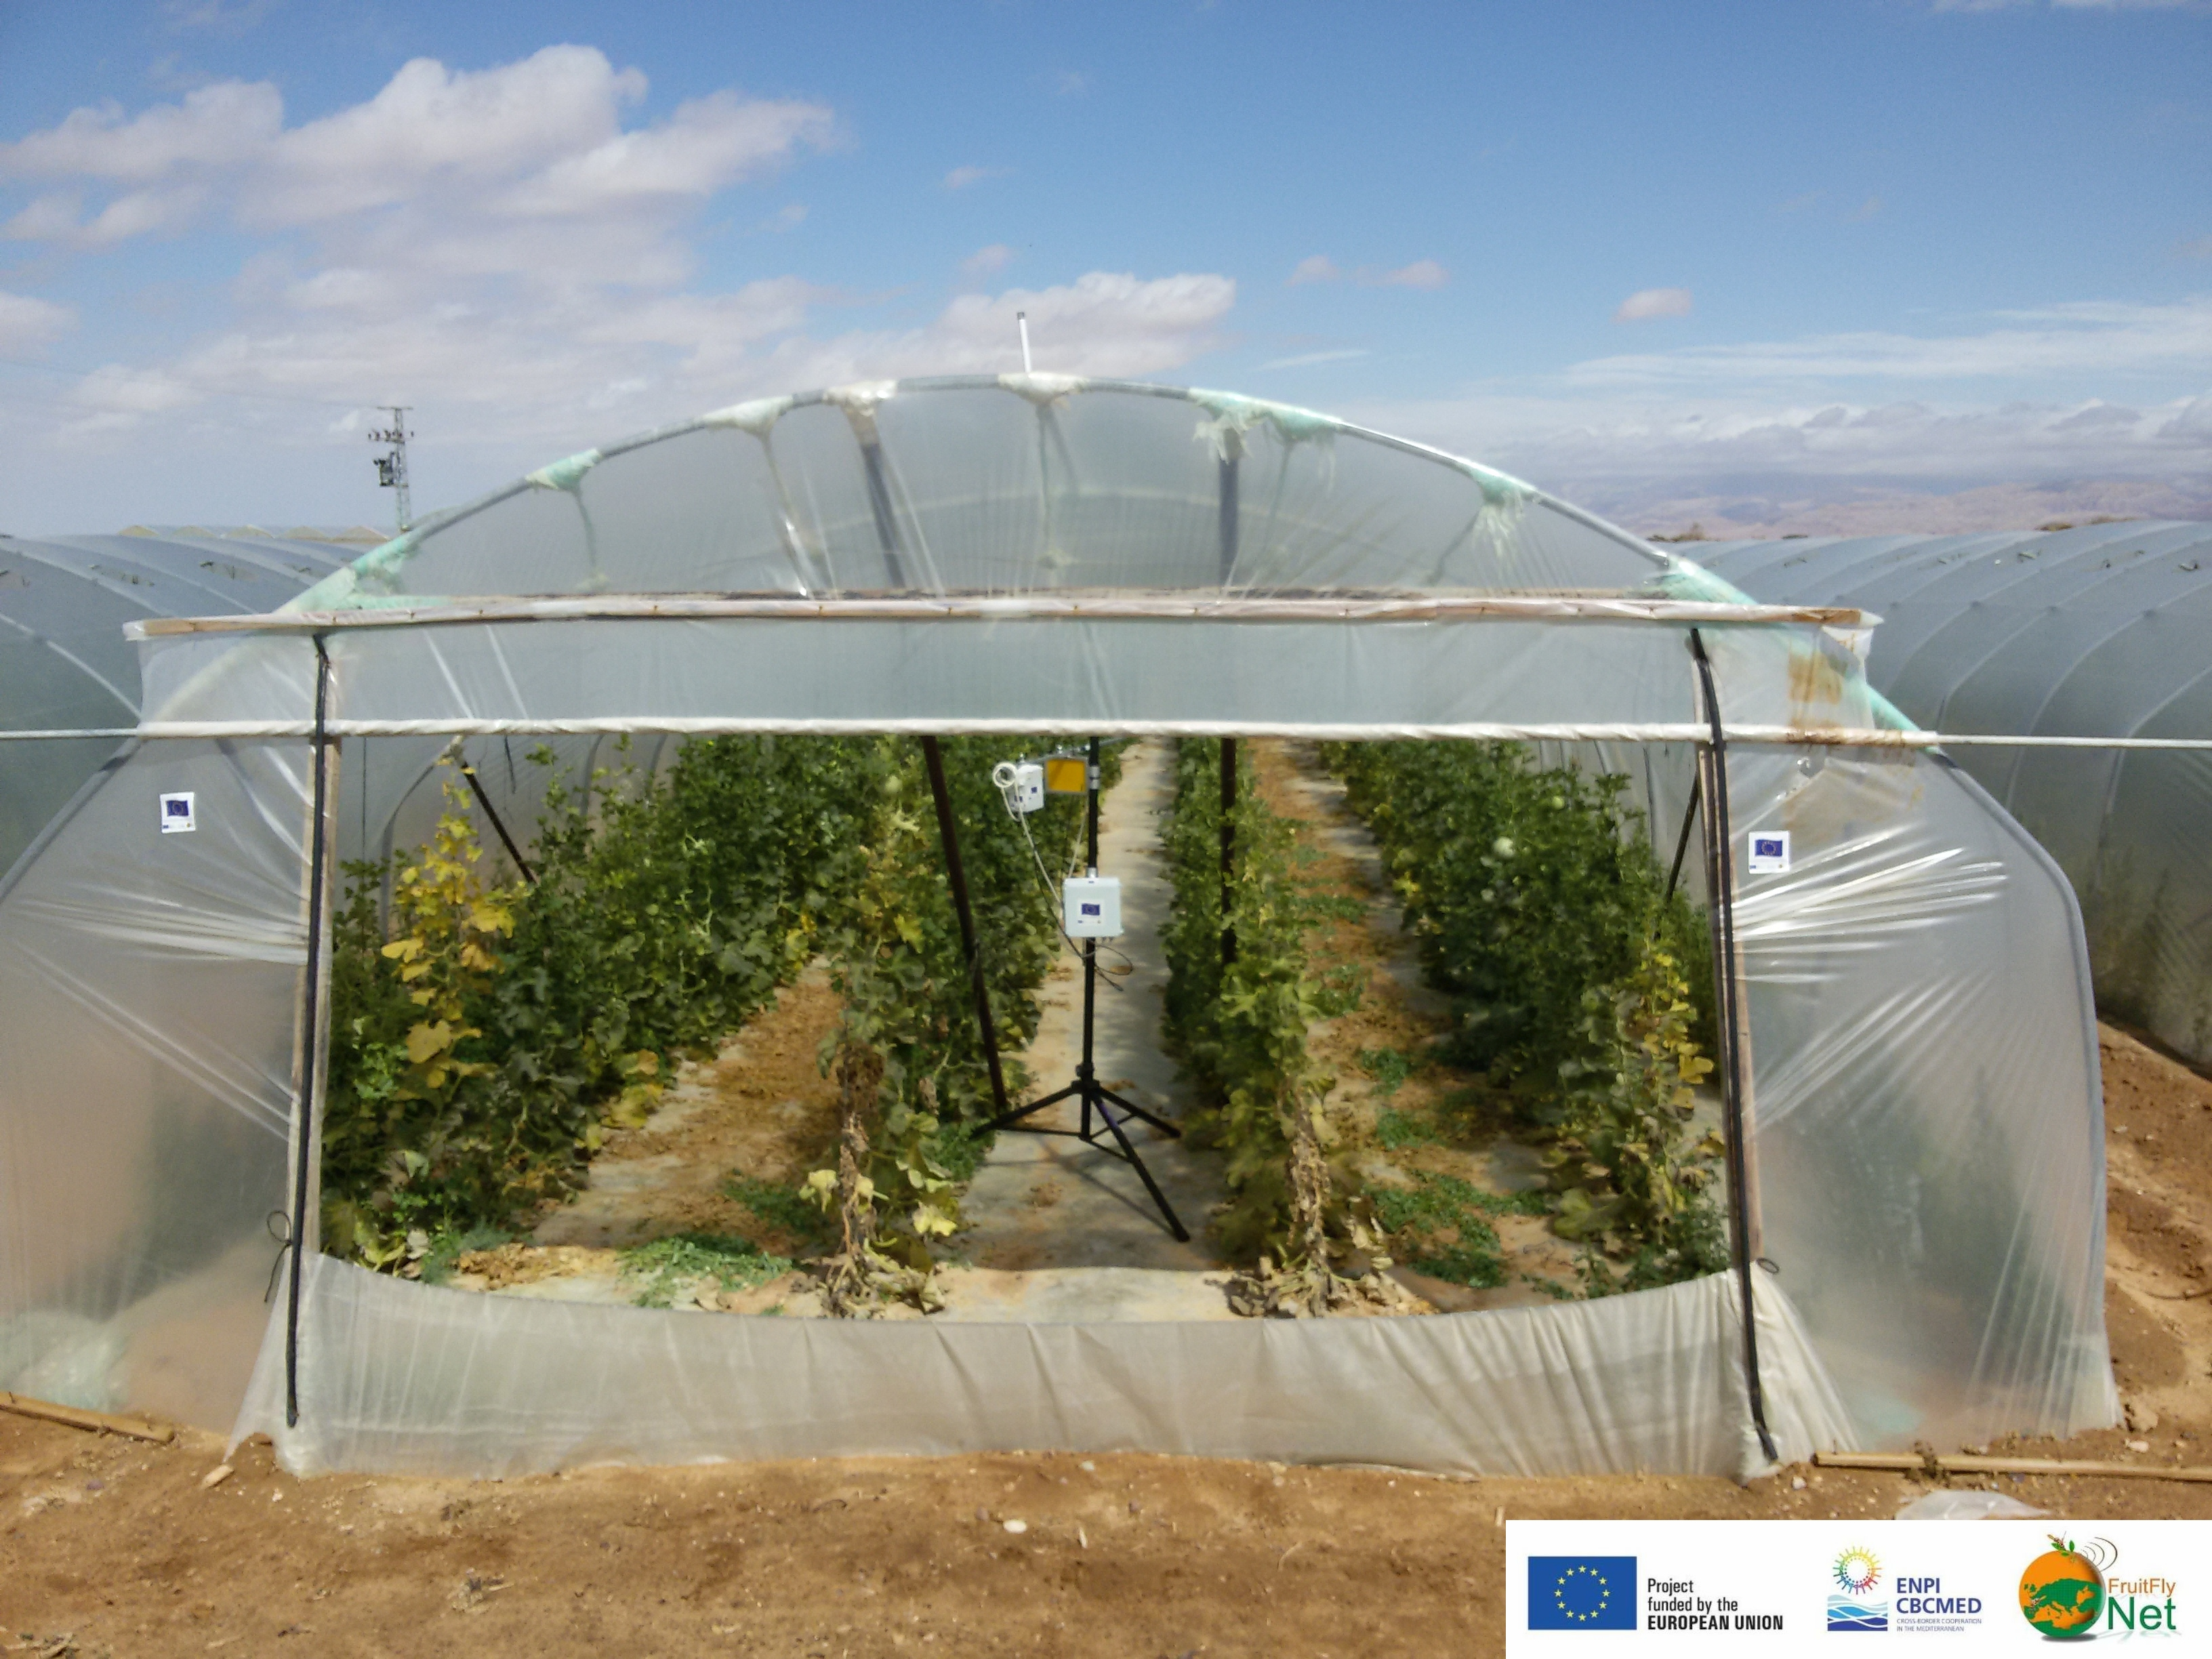 The first fruit fly Real Time Insect Counting Traps (ReTIC) in melon tunnels in the Arava, Israel